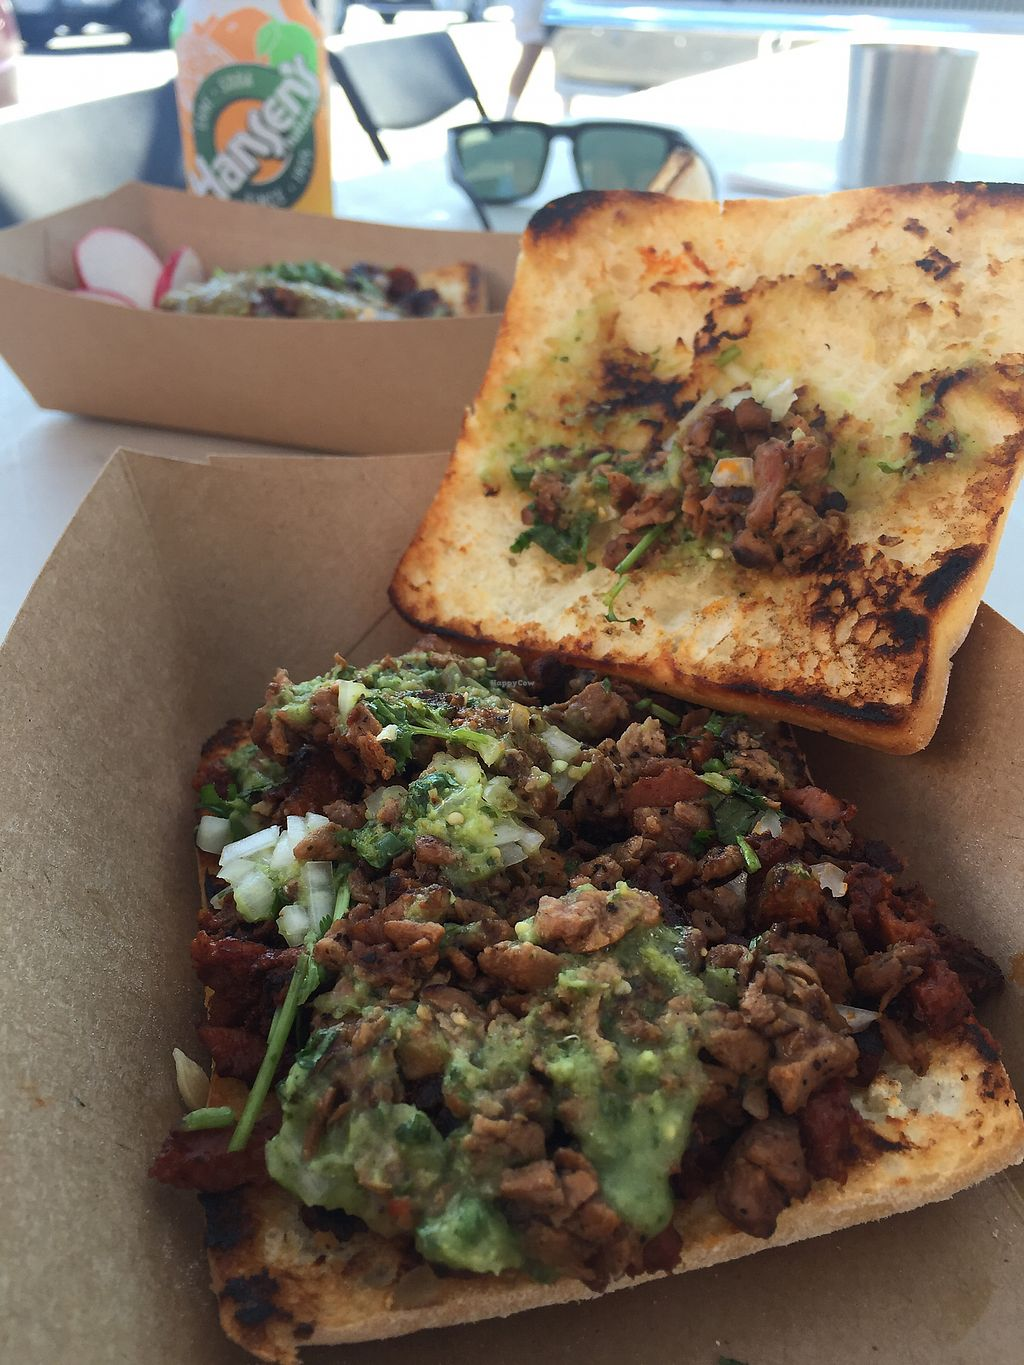 """Photo of La Taqueria Vegiee San Diego - Food Truck  by <a href=""""/members/profile/veganinsandiego"""">veganinsandiego</a> <br/>Mixta torta inside <br/> September 6, 2017  - <a href='/contact/abuse/image/98496/301367'>Report</a>"""